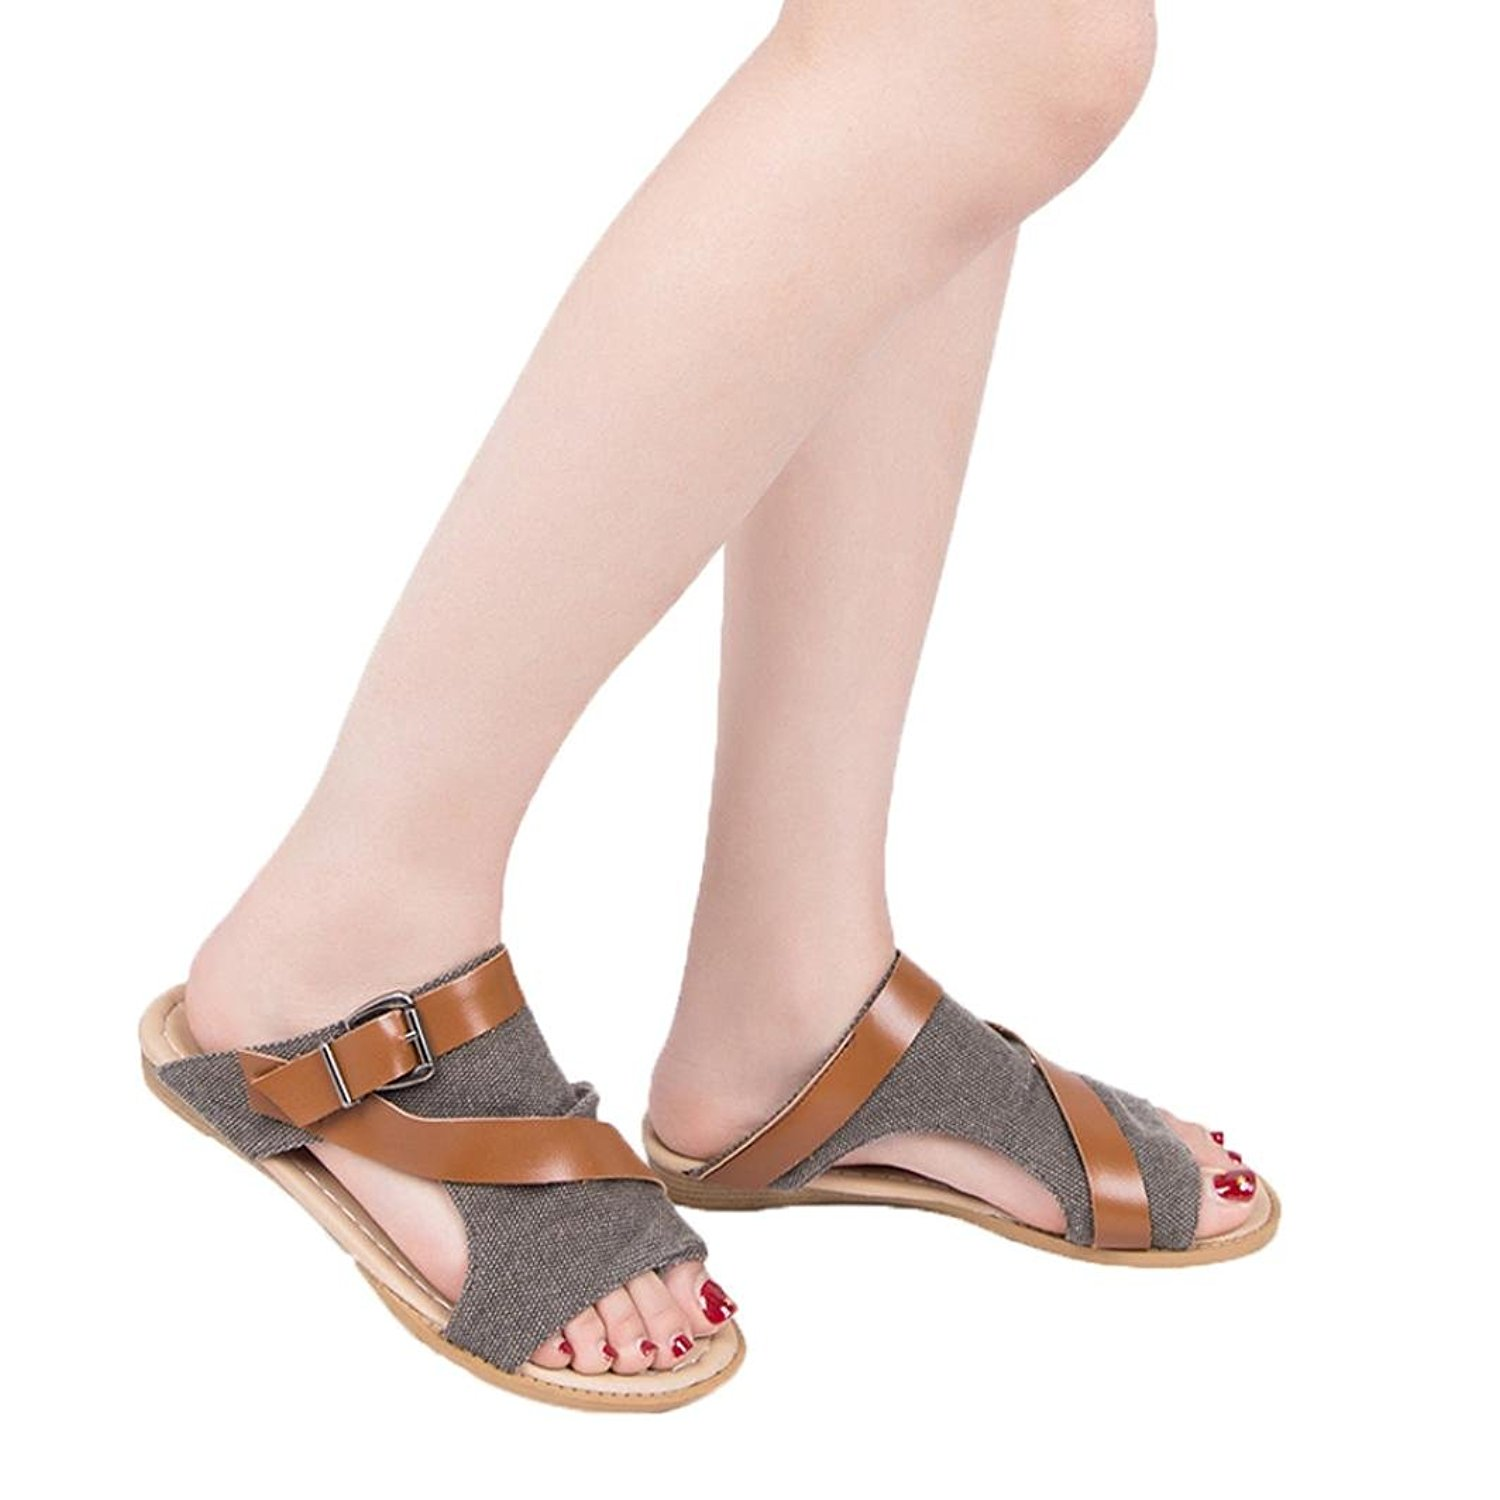 5f472d27278 Get Quotations · Gyoume Women Sandal Shoes Wedge Crisscross Sandal Strappy  Buckle Cutout Shoes Stacked Wedge Sandal